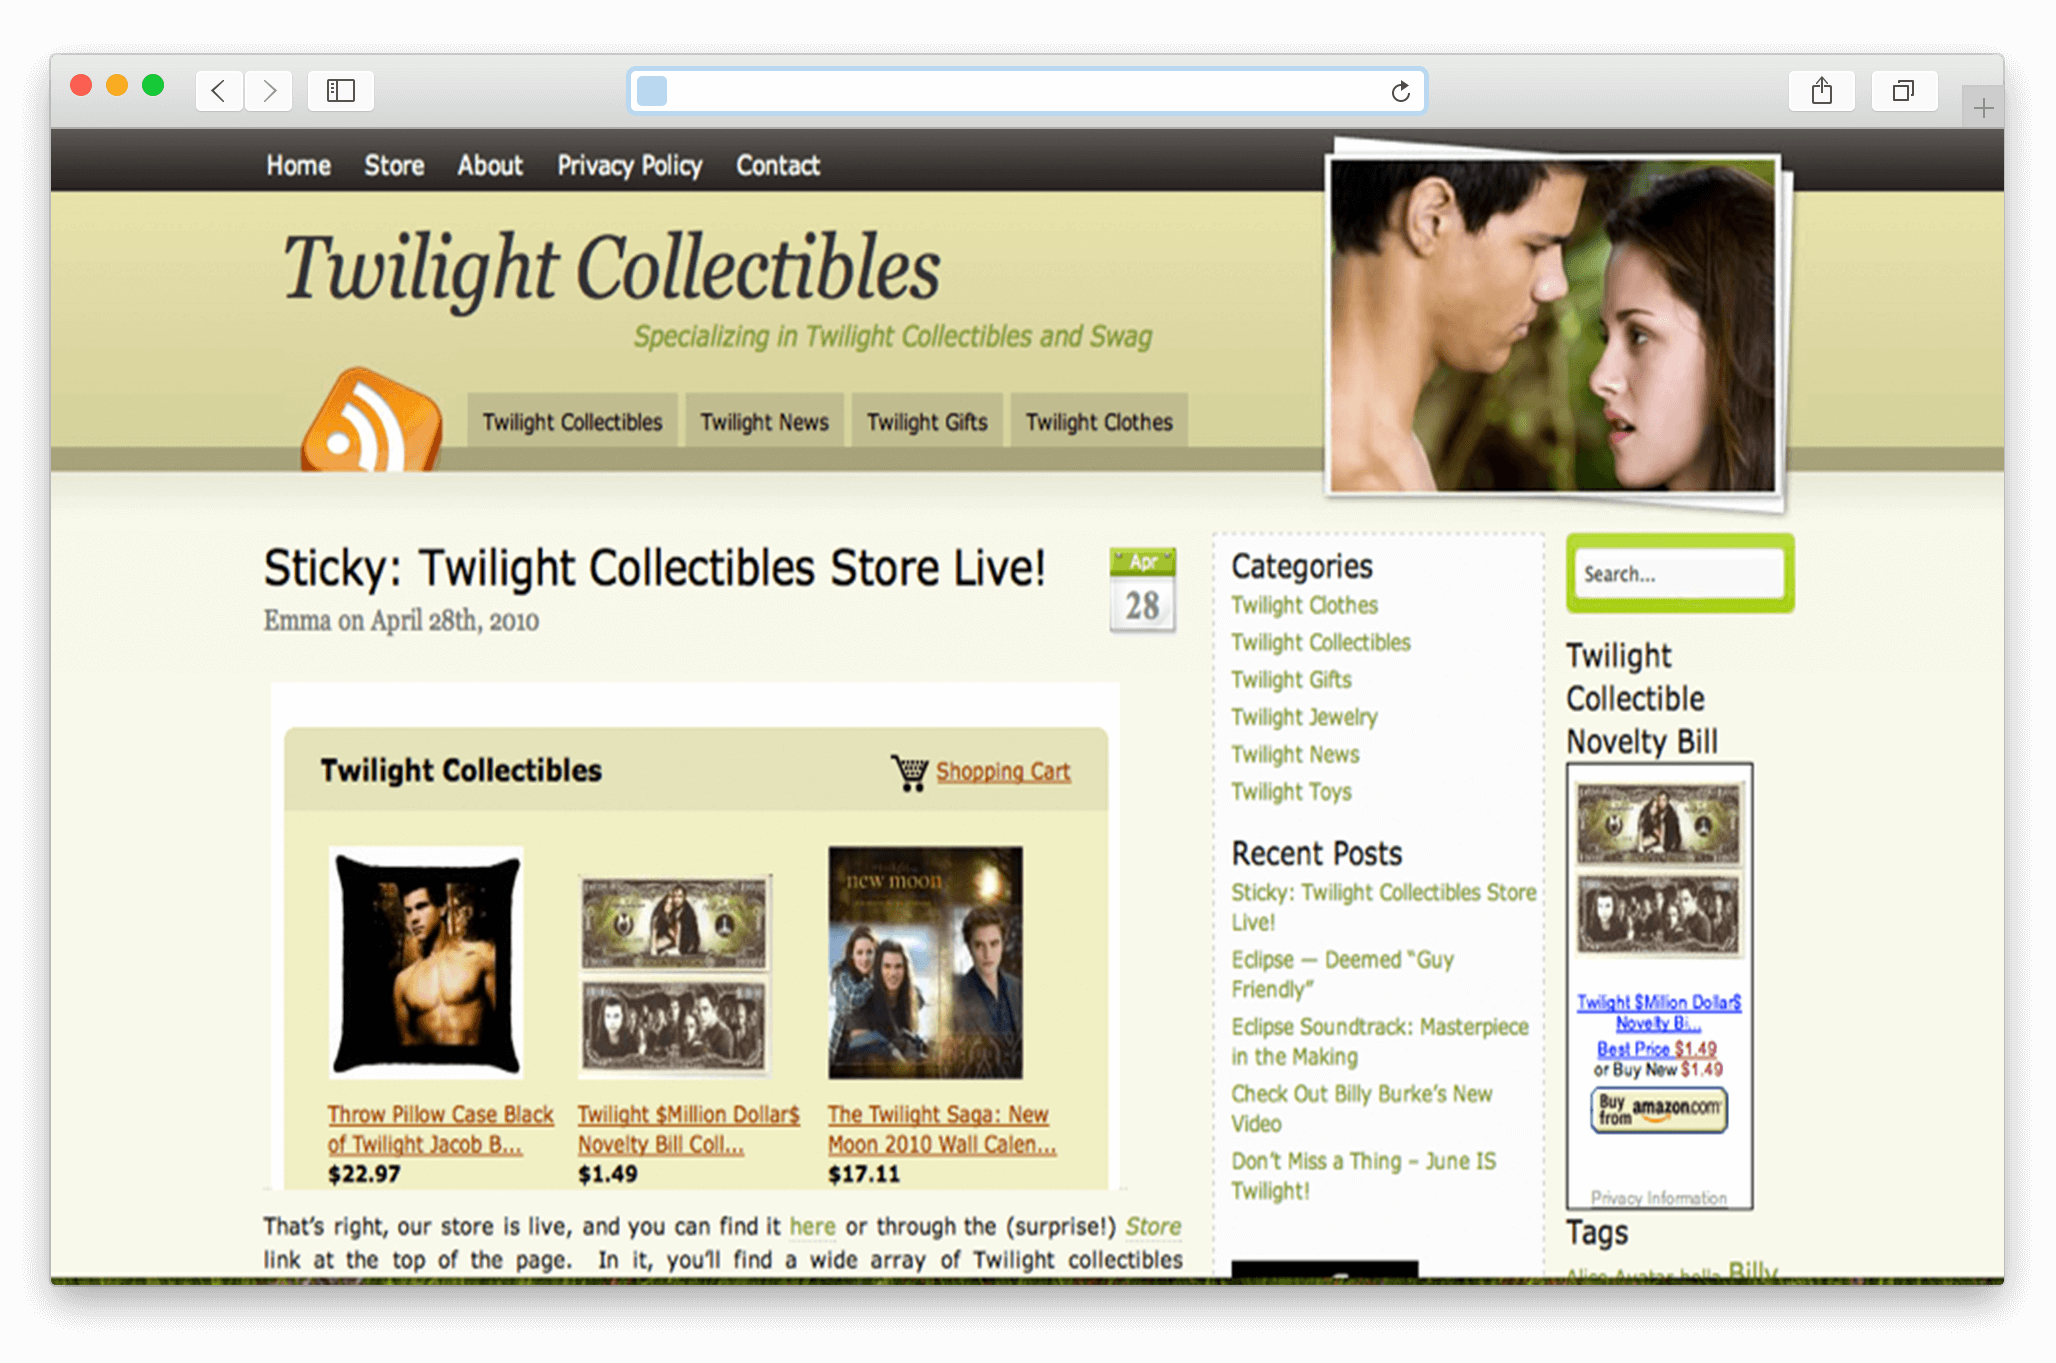 Twilight Collectibles